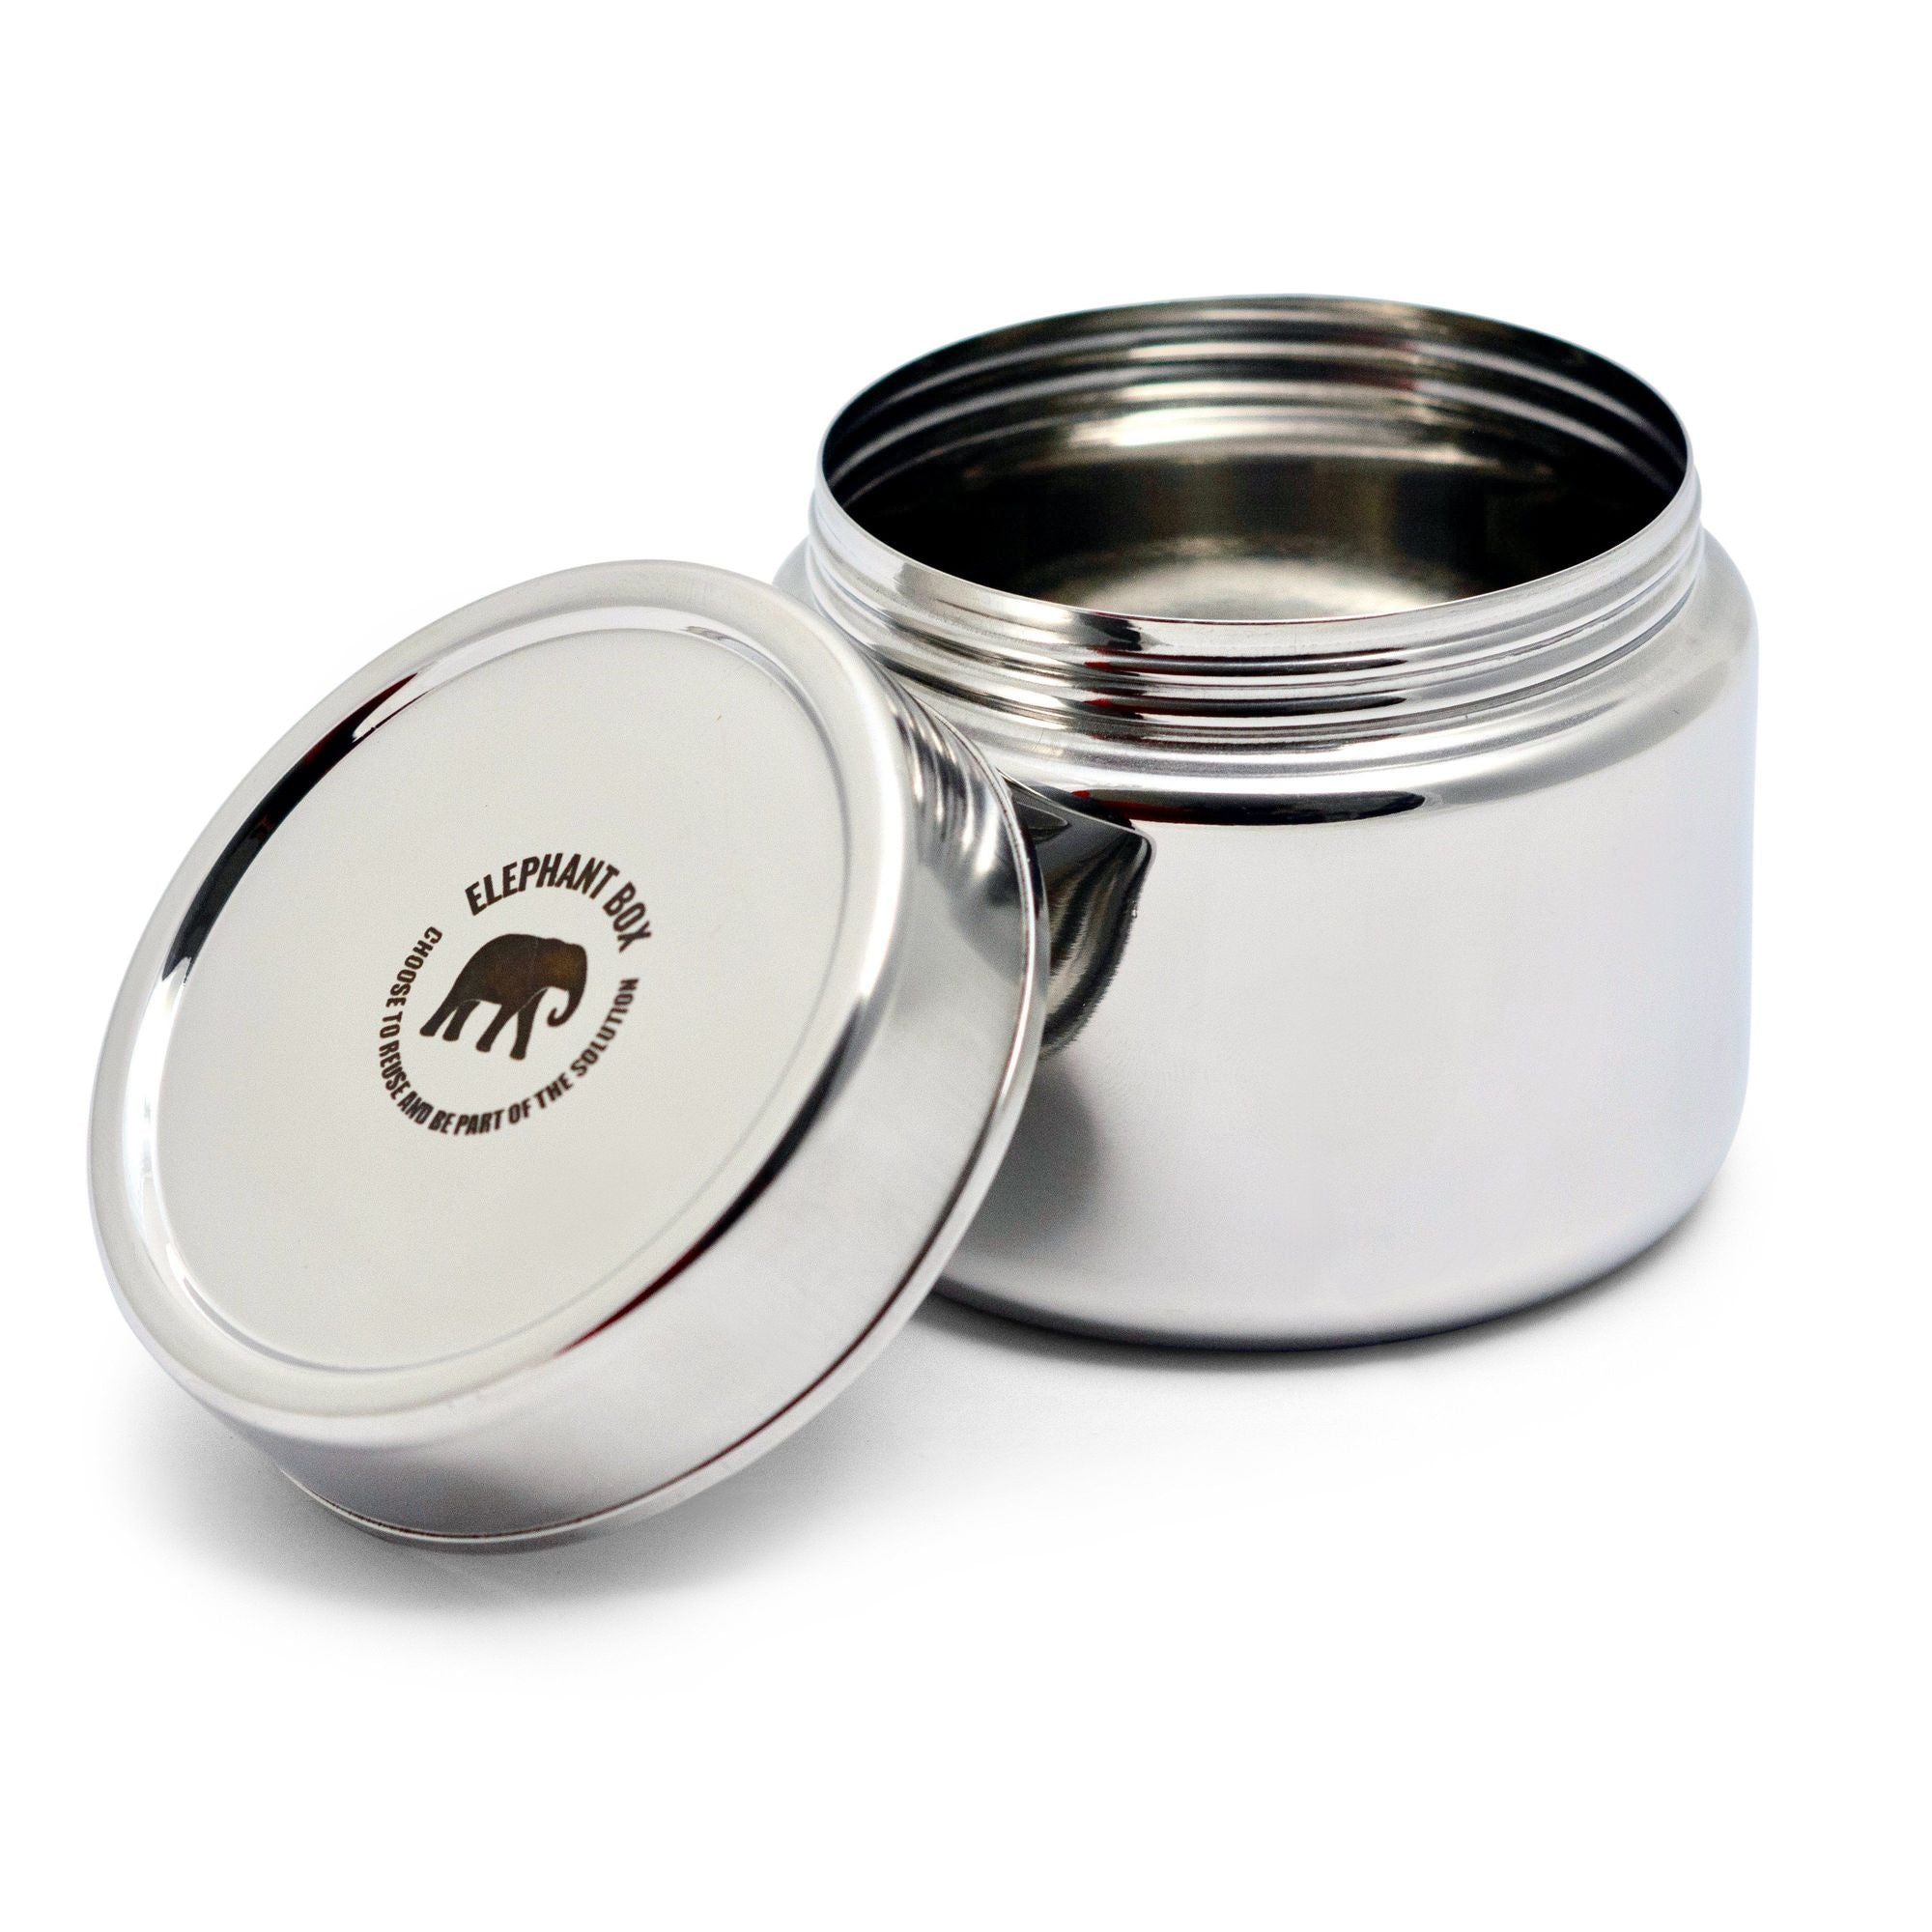 Large Leak-proof and Airtight Canister - Elephant Box - 450ml